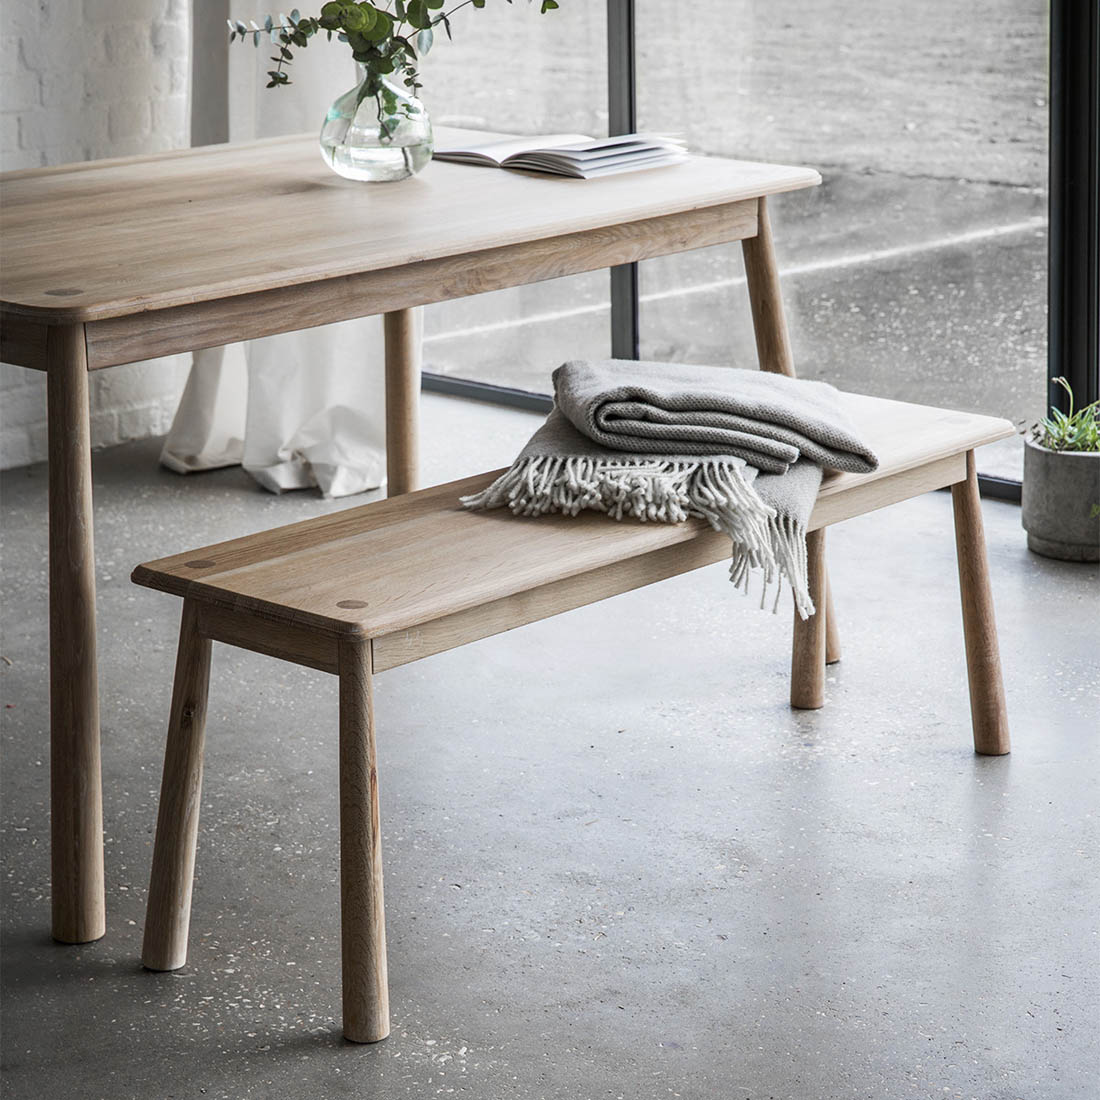 Scandi style interiors | Scandi furniture | Preparing for Autumn with Harley and Lola | Apartment Apothecary